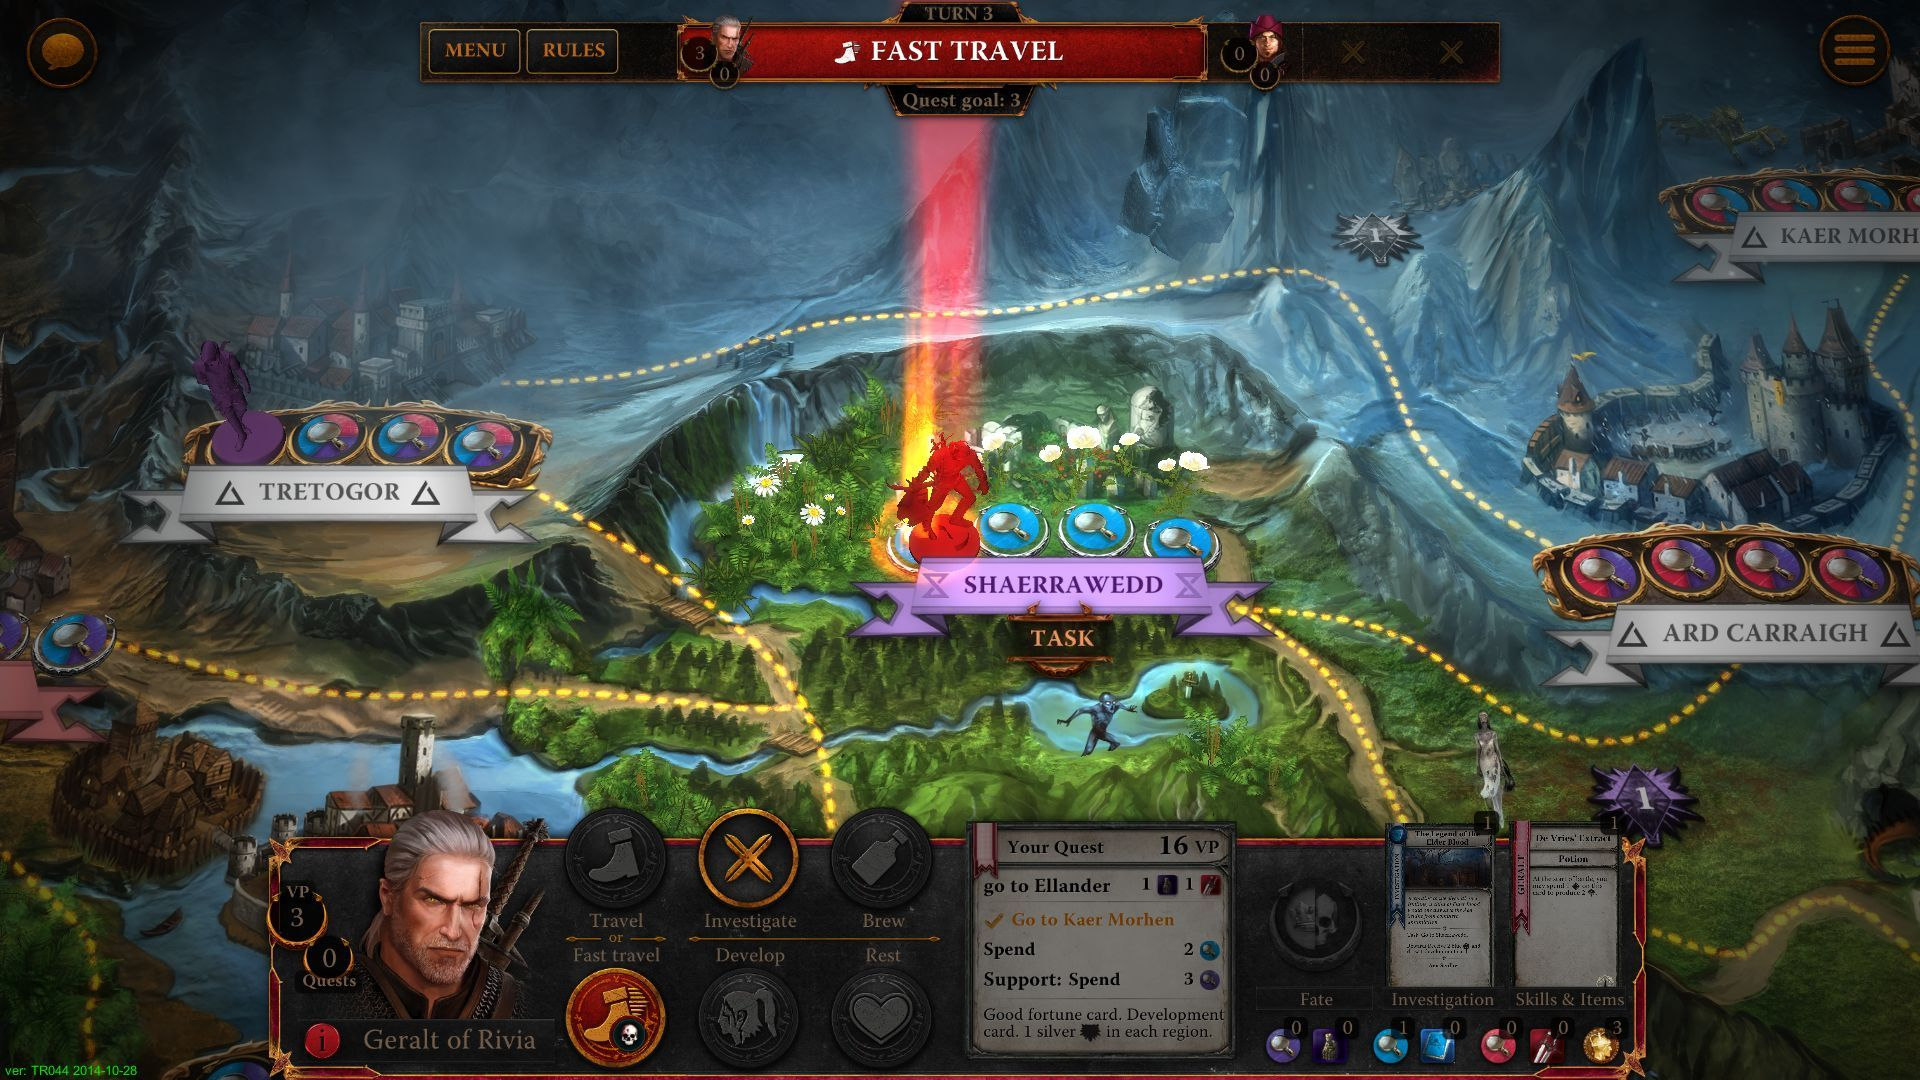 Screen The Witcher Adventure Game Adventure games, The